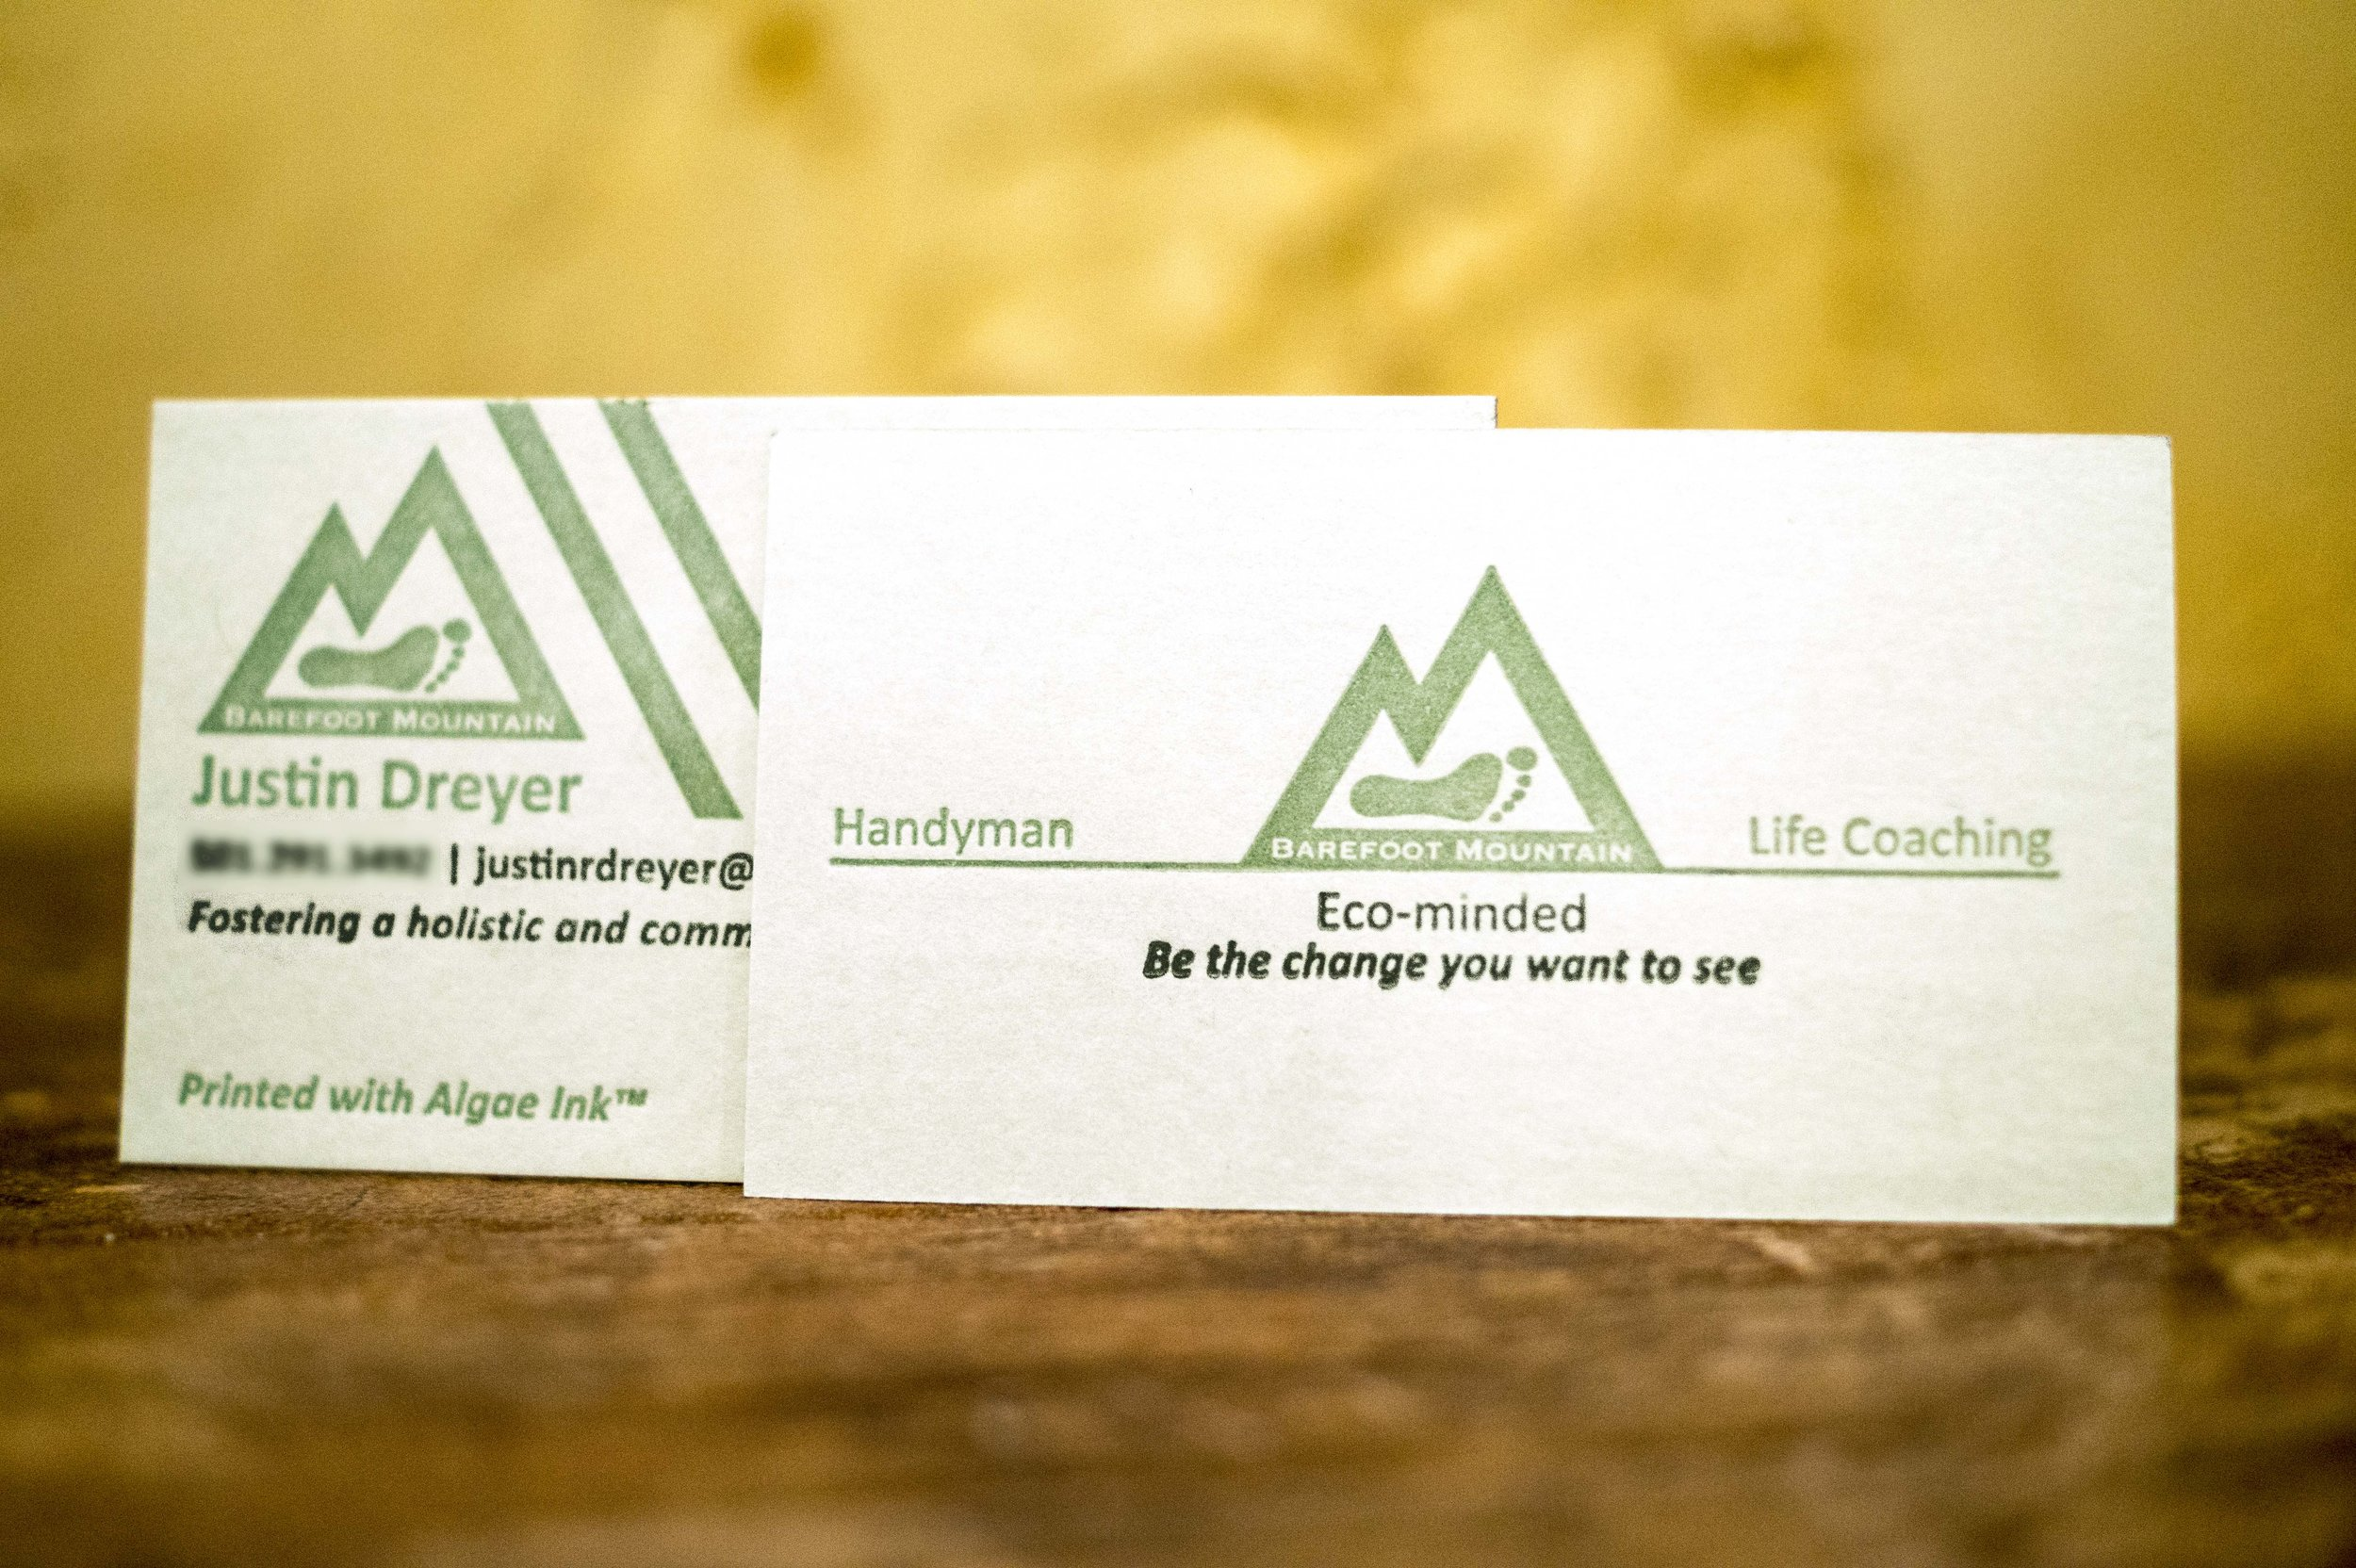 Deluxe Business Cards - Our premium paper2 color process1 or 2 sided cardStandard 3.5x2